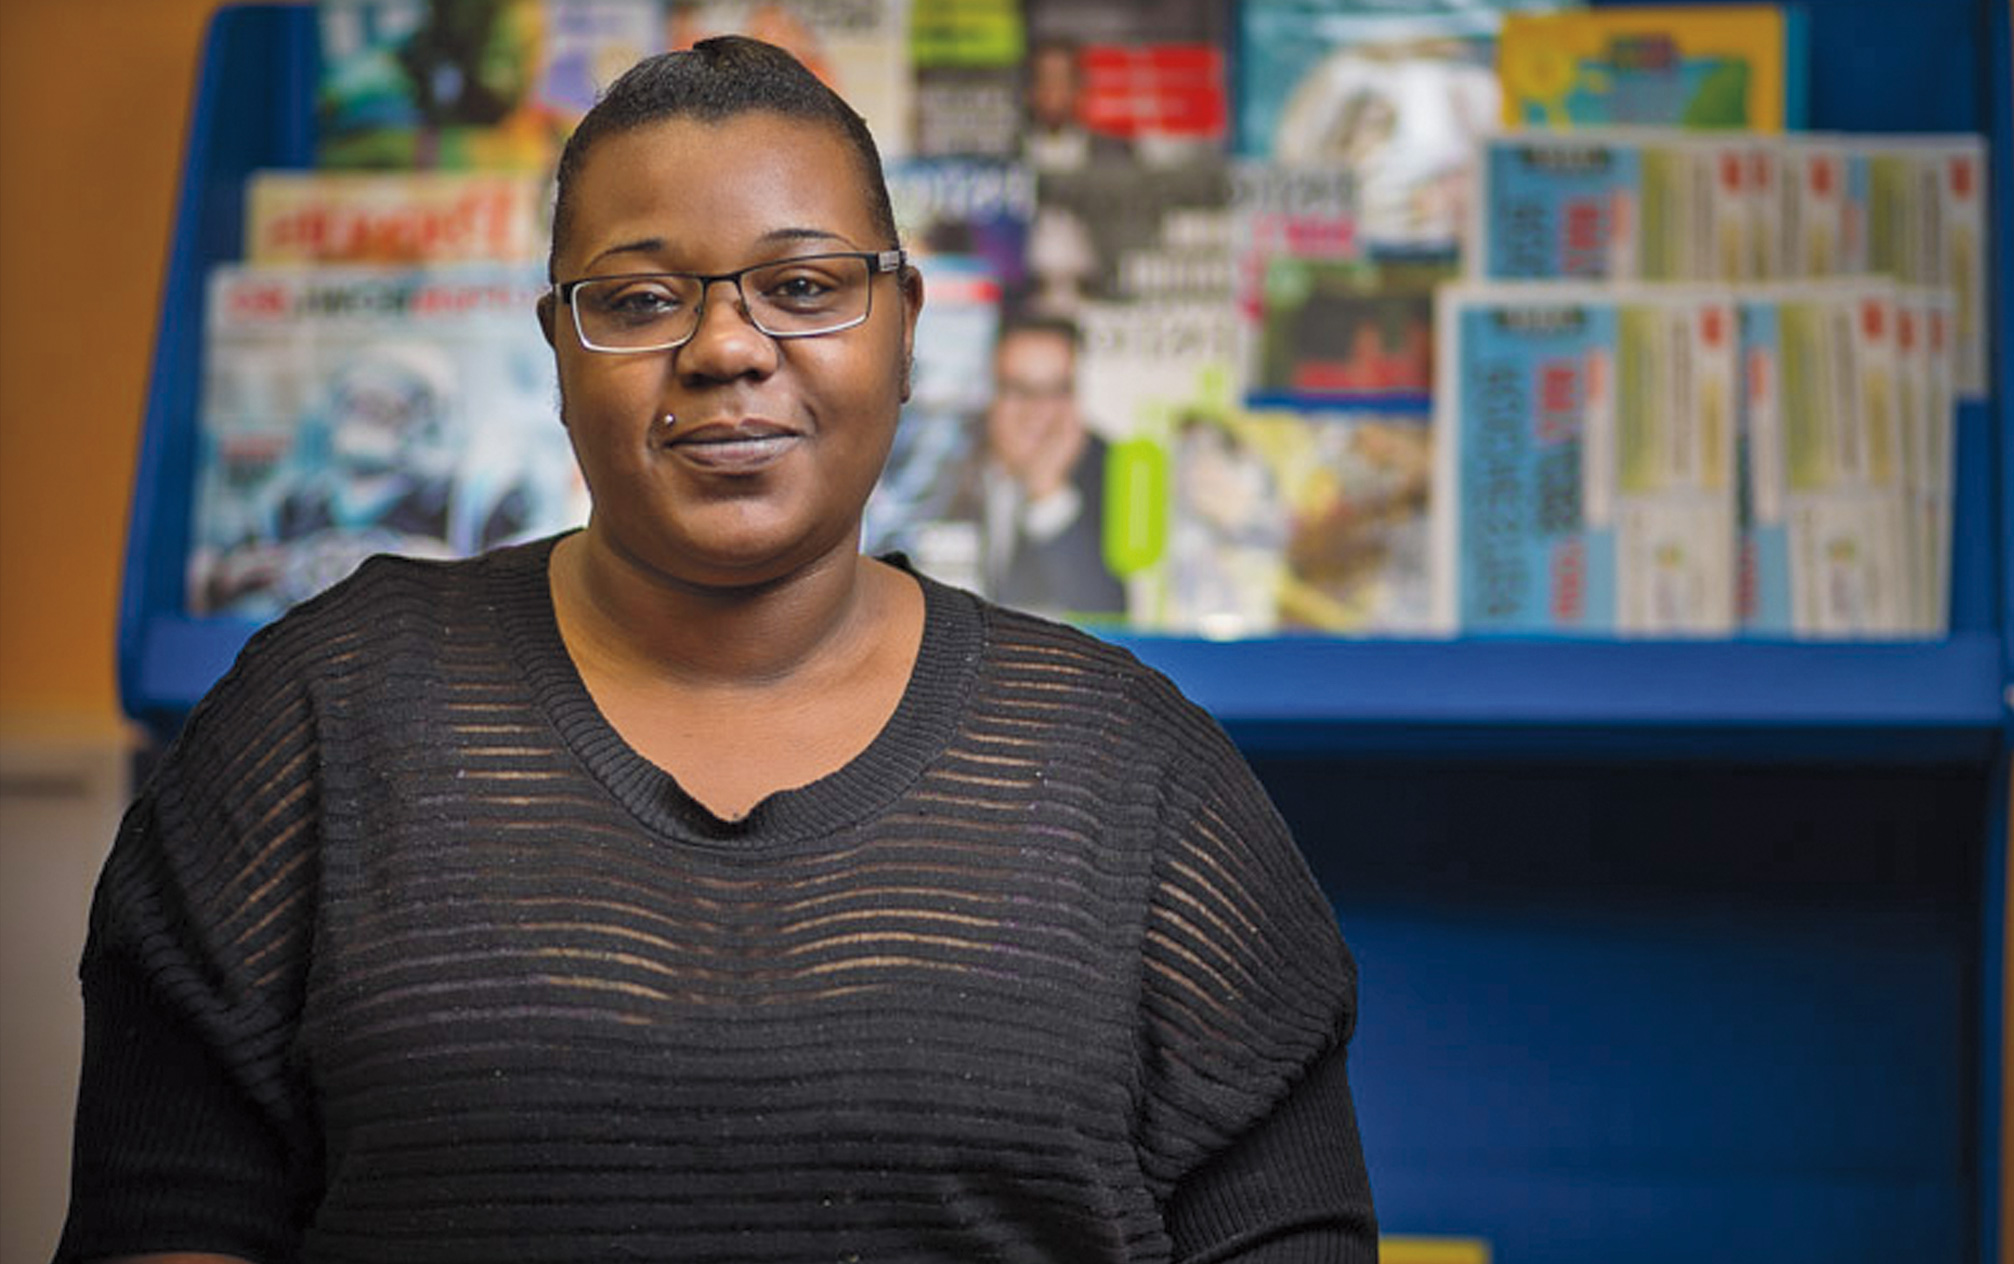 Syreeta Knight - Baden Street Settlement House, Emergency Family Services